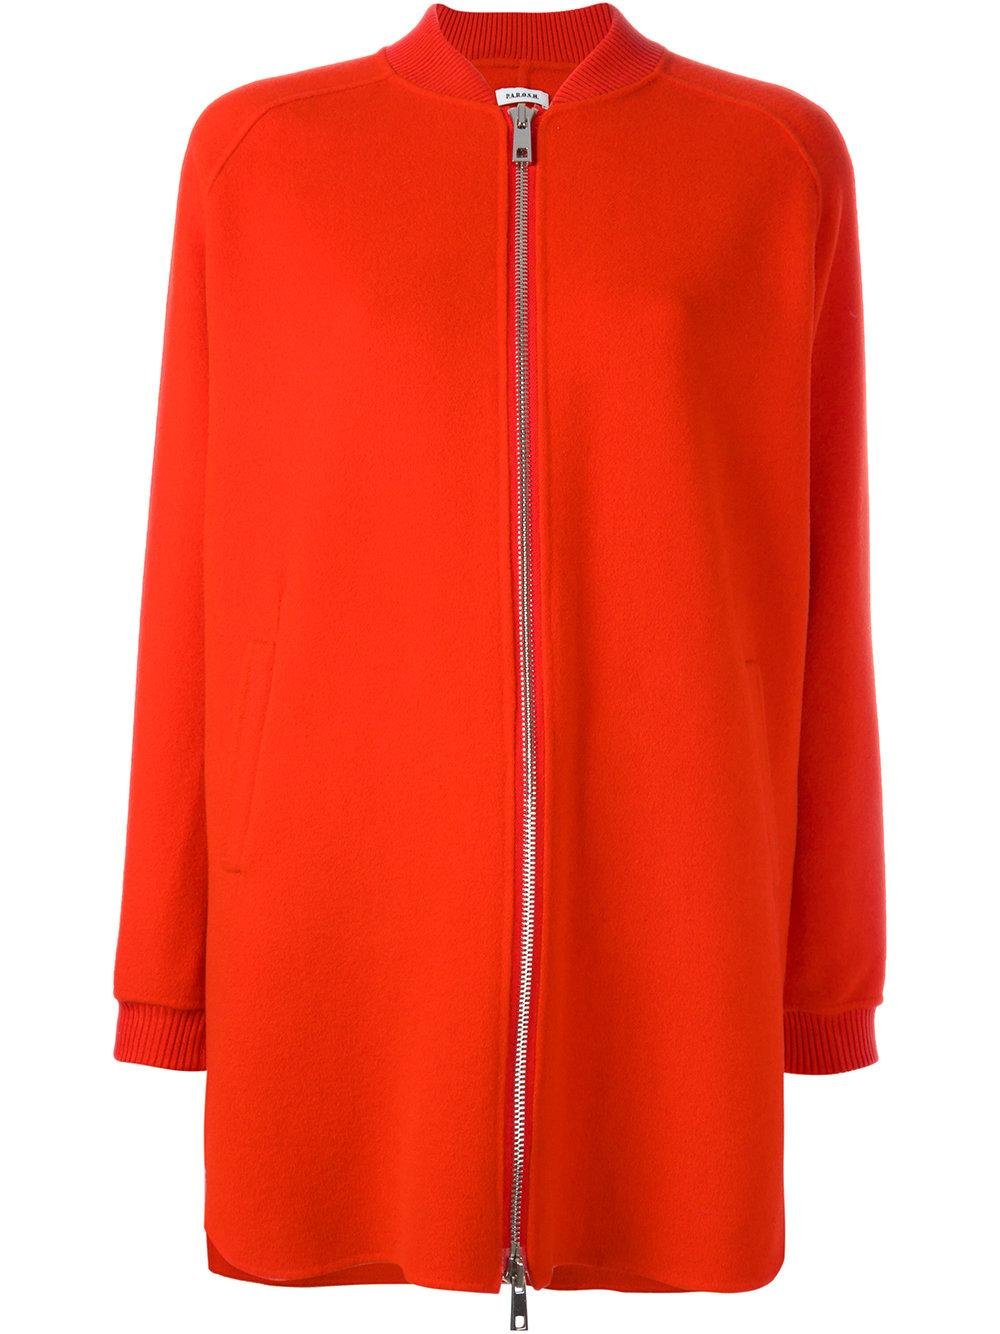 P.a.r.o.s.h. Zip Jacket in Red